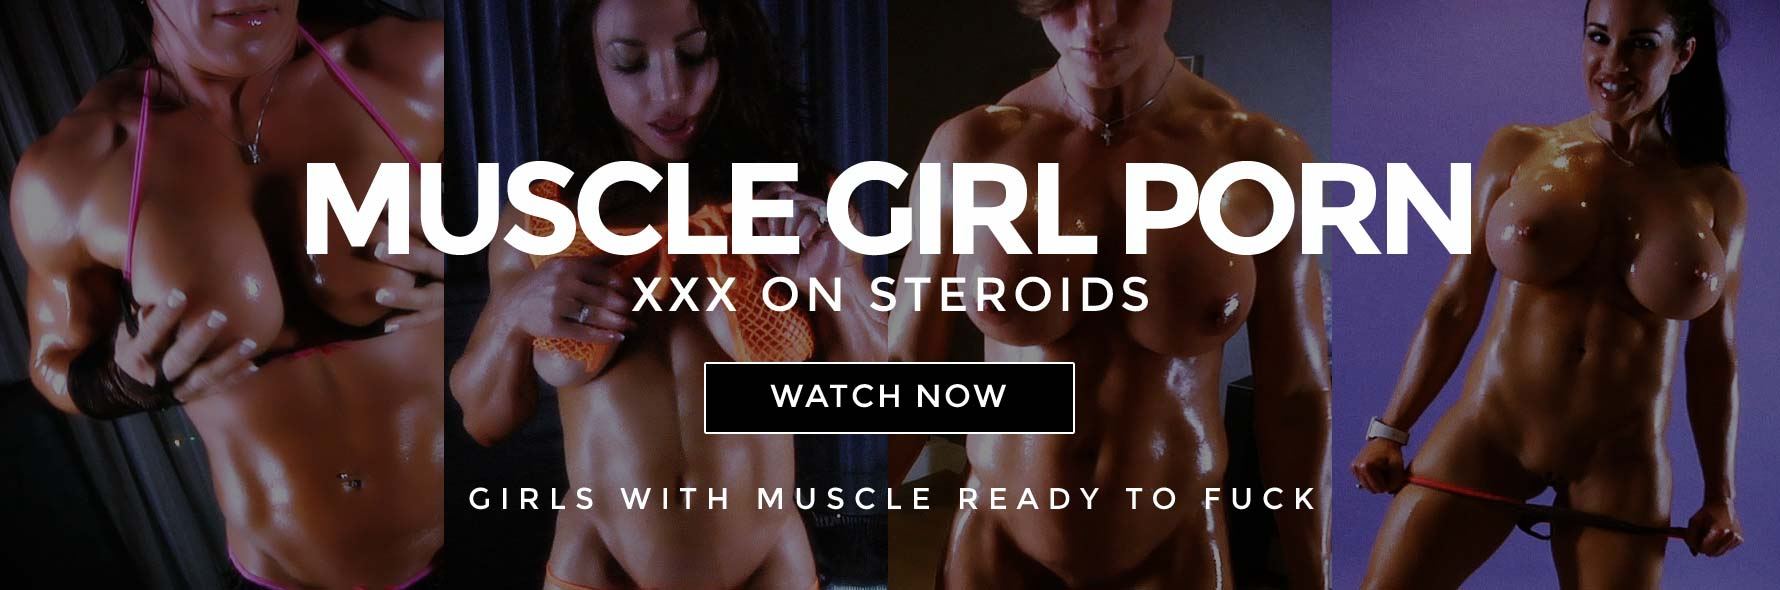 Start watching muscle girl videos now banner